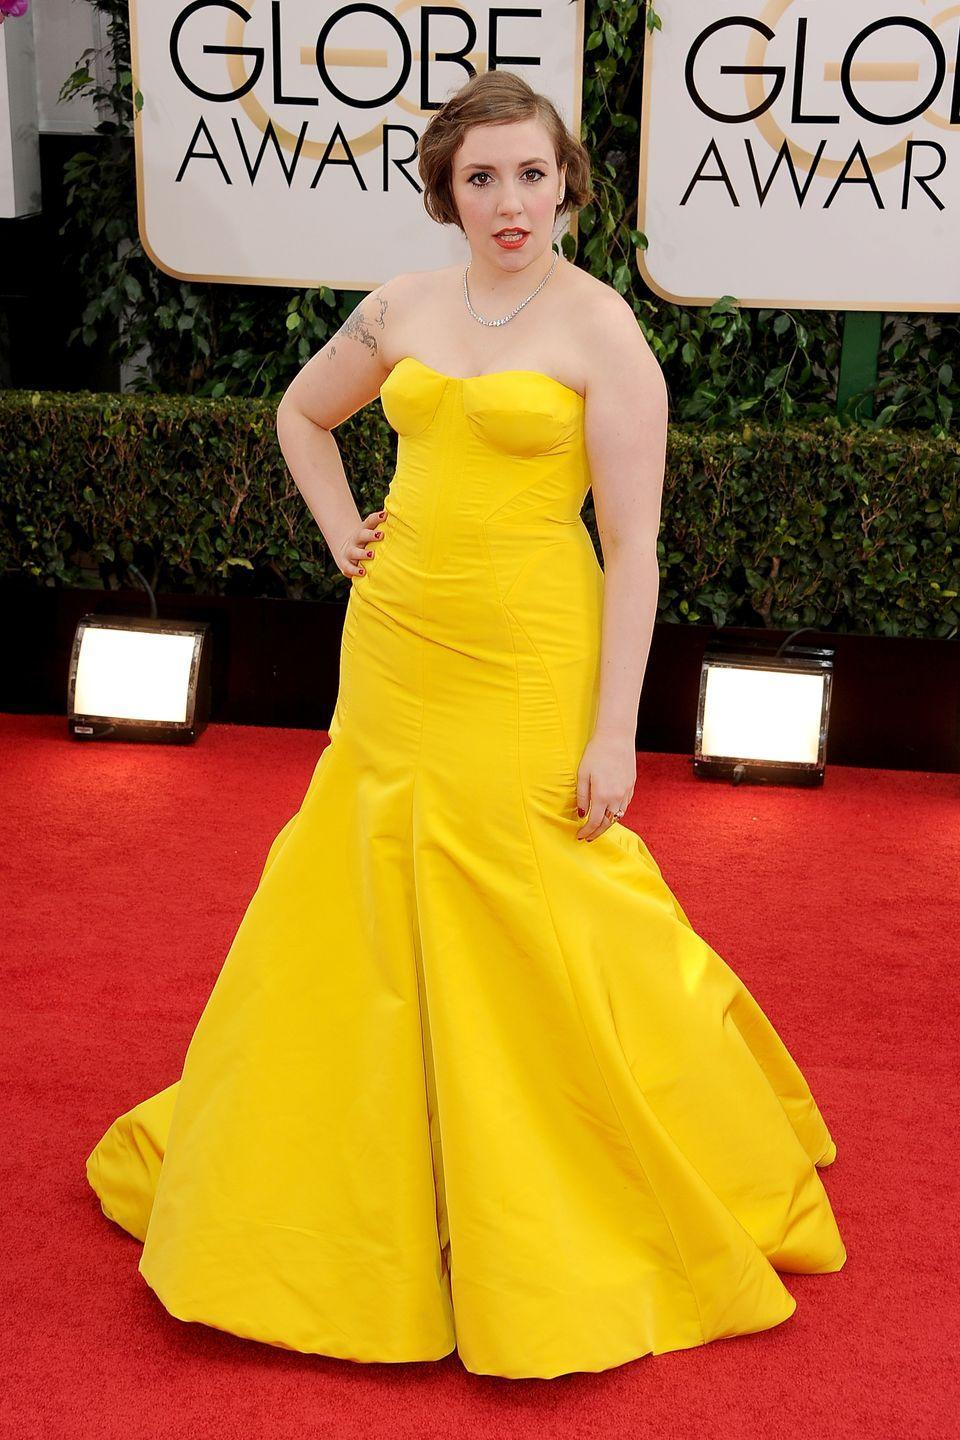 <p>Lena Dunham went for a Disney princess vibe at the 2014 Golden Globes in this bright yellow dress designed by Zac Posen.</p>